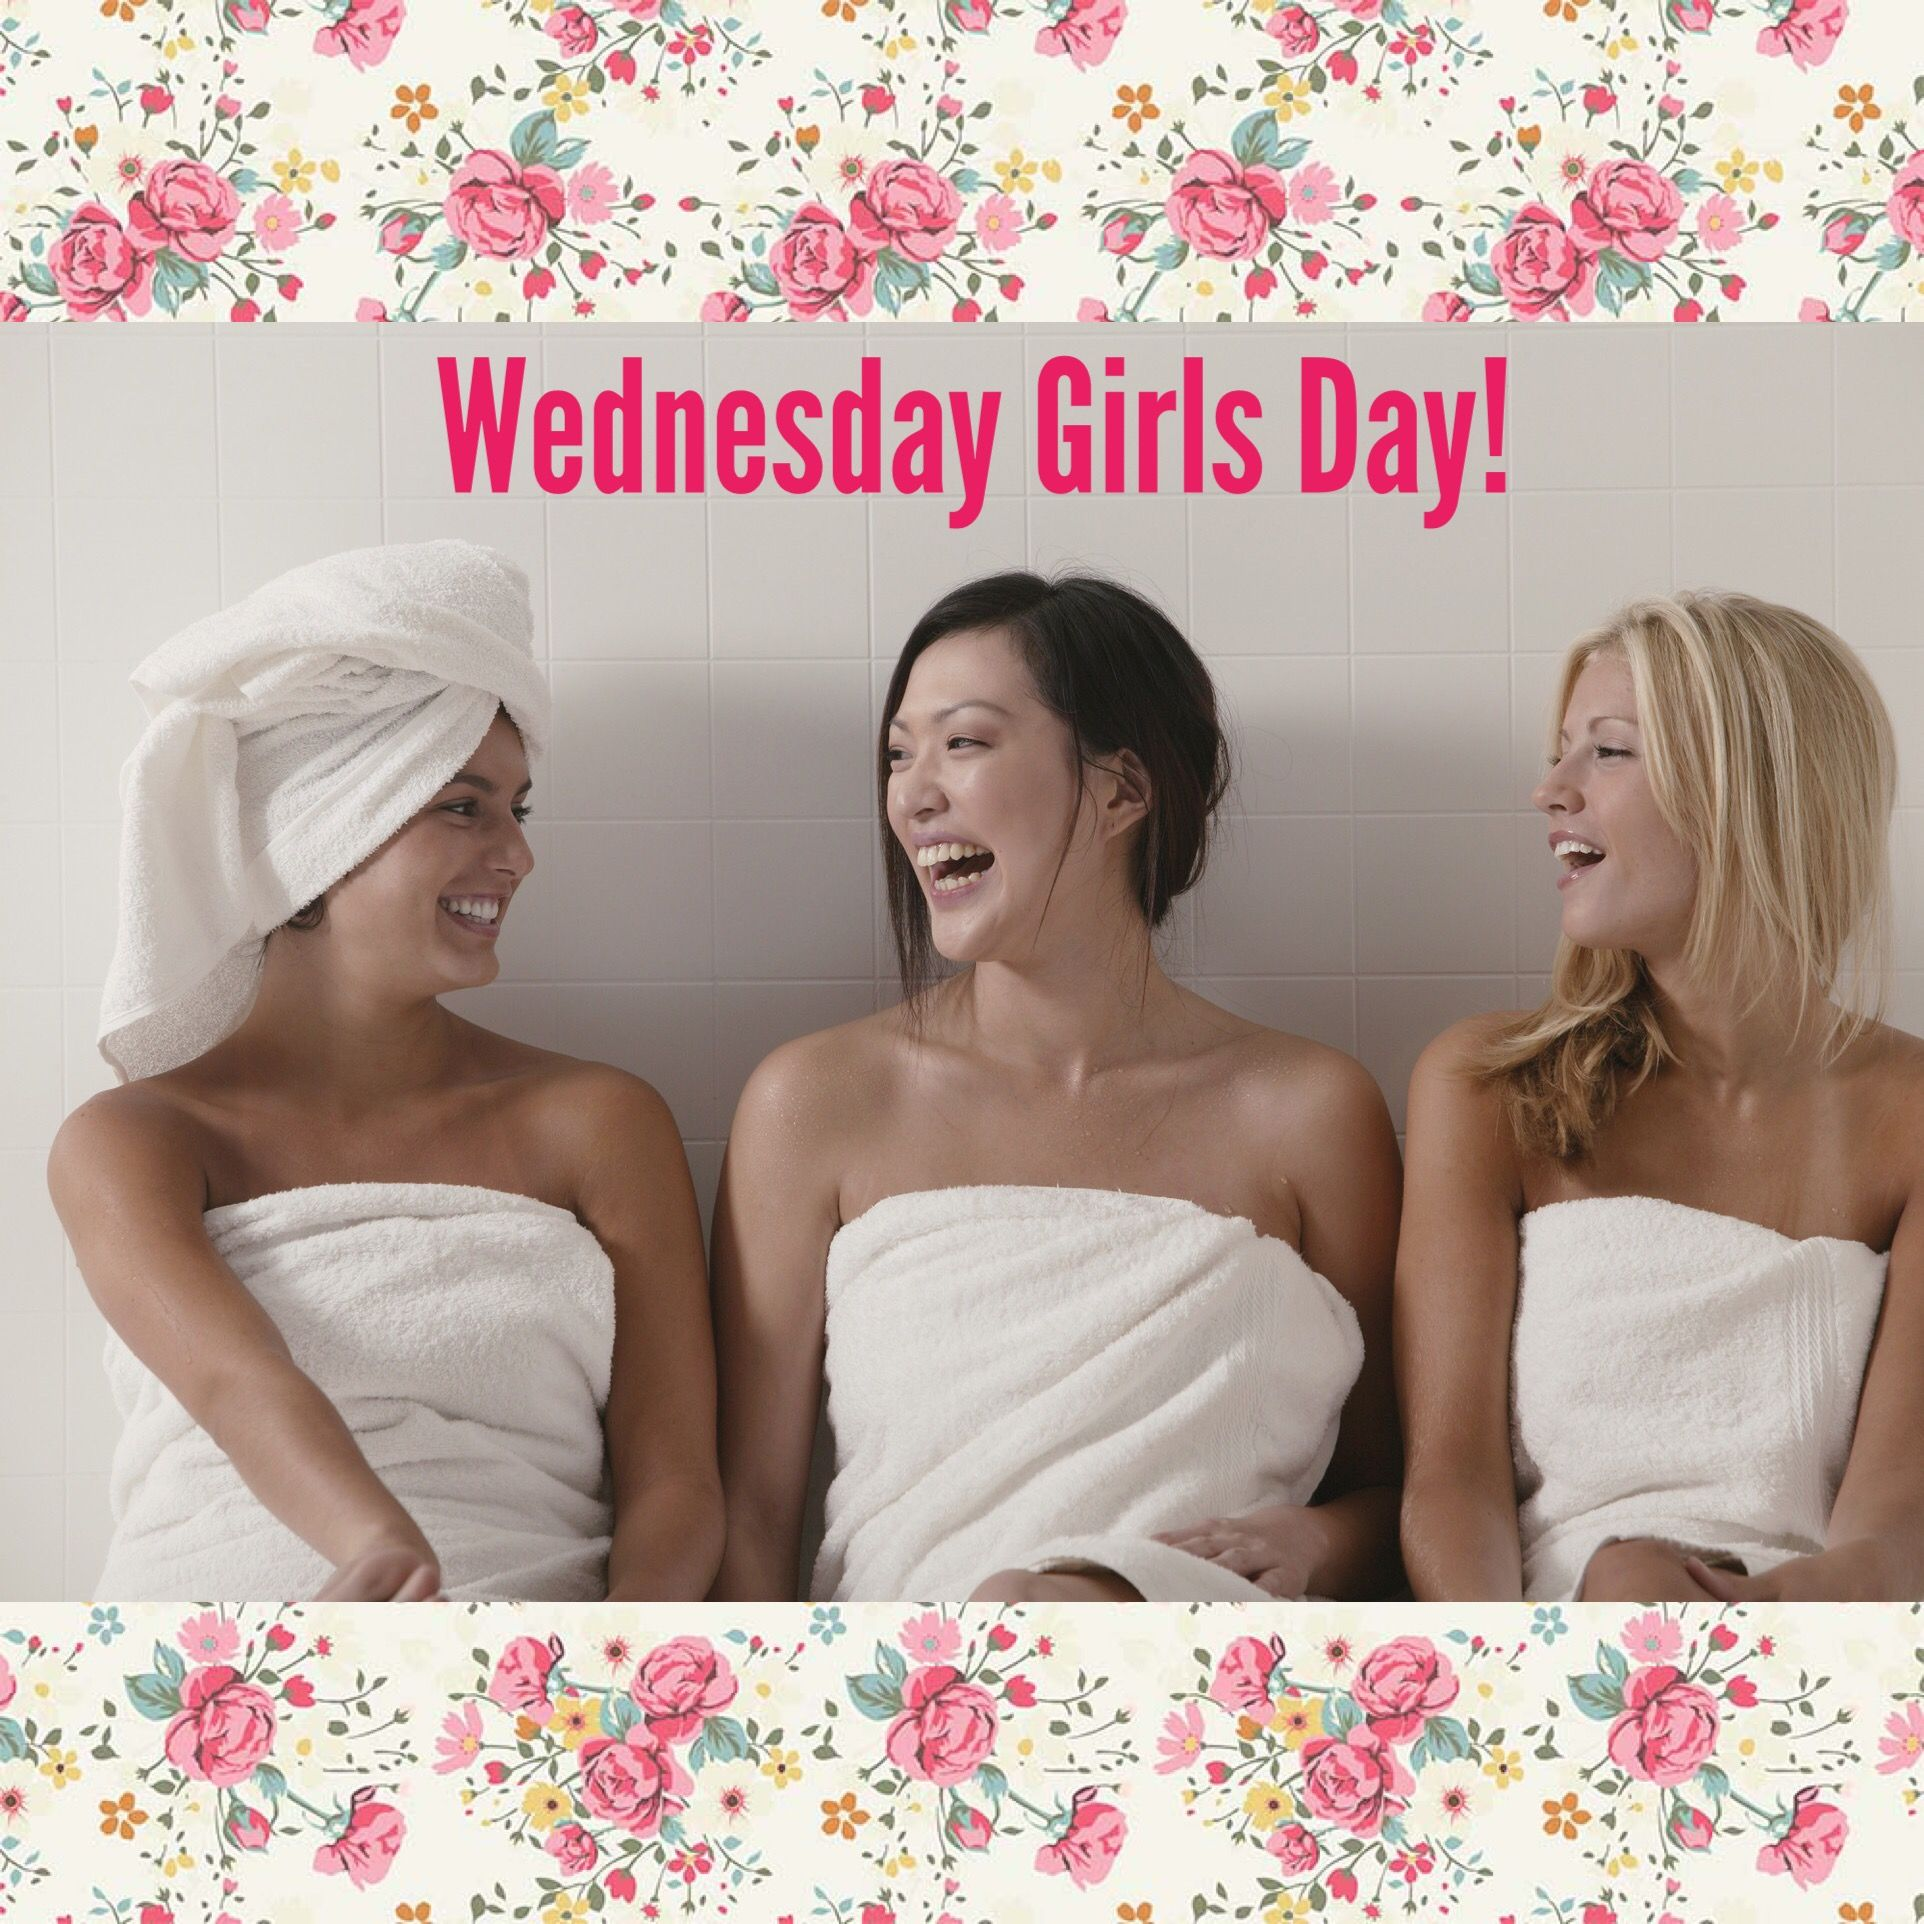 Need a mid week break? Make a day of it with friends & come try our express treatments just as the Lunch Time Lift, Express Back Facial, Express Micro & Peel to heal and reveal smoother, younger and more radiant skin.  (702) 816-5996 #lunchtimepeel #lunchtimelift #organicpeel #nonsurgicalfacelift #bacial #backfacial #aminahsorganicskinspa #eminenceorganics